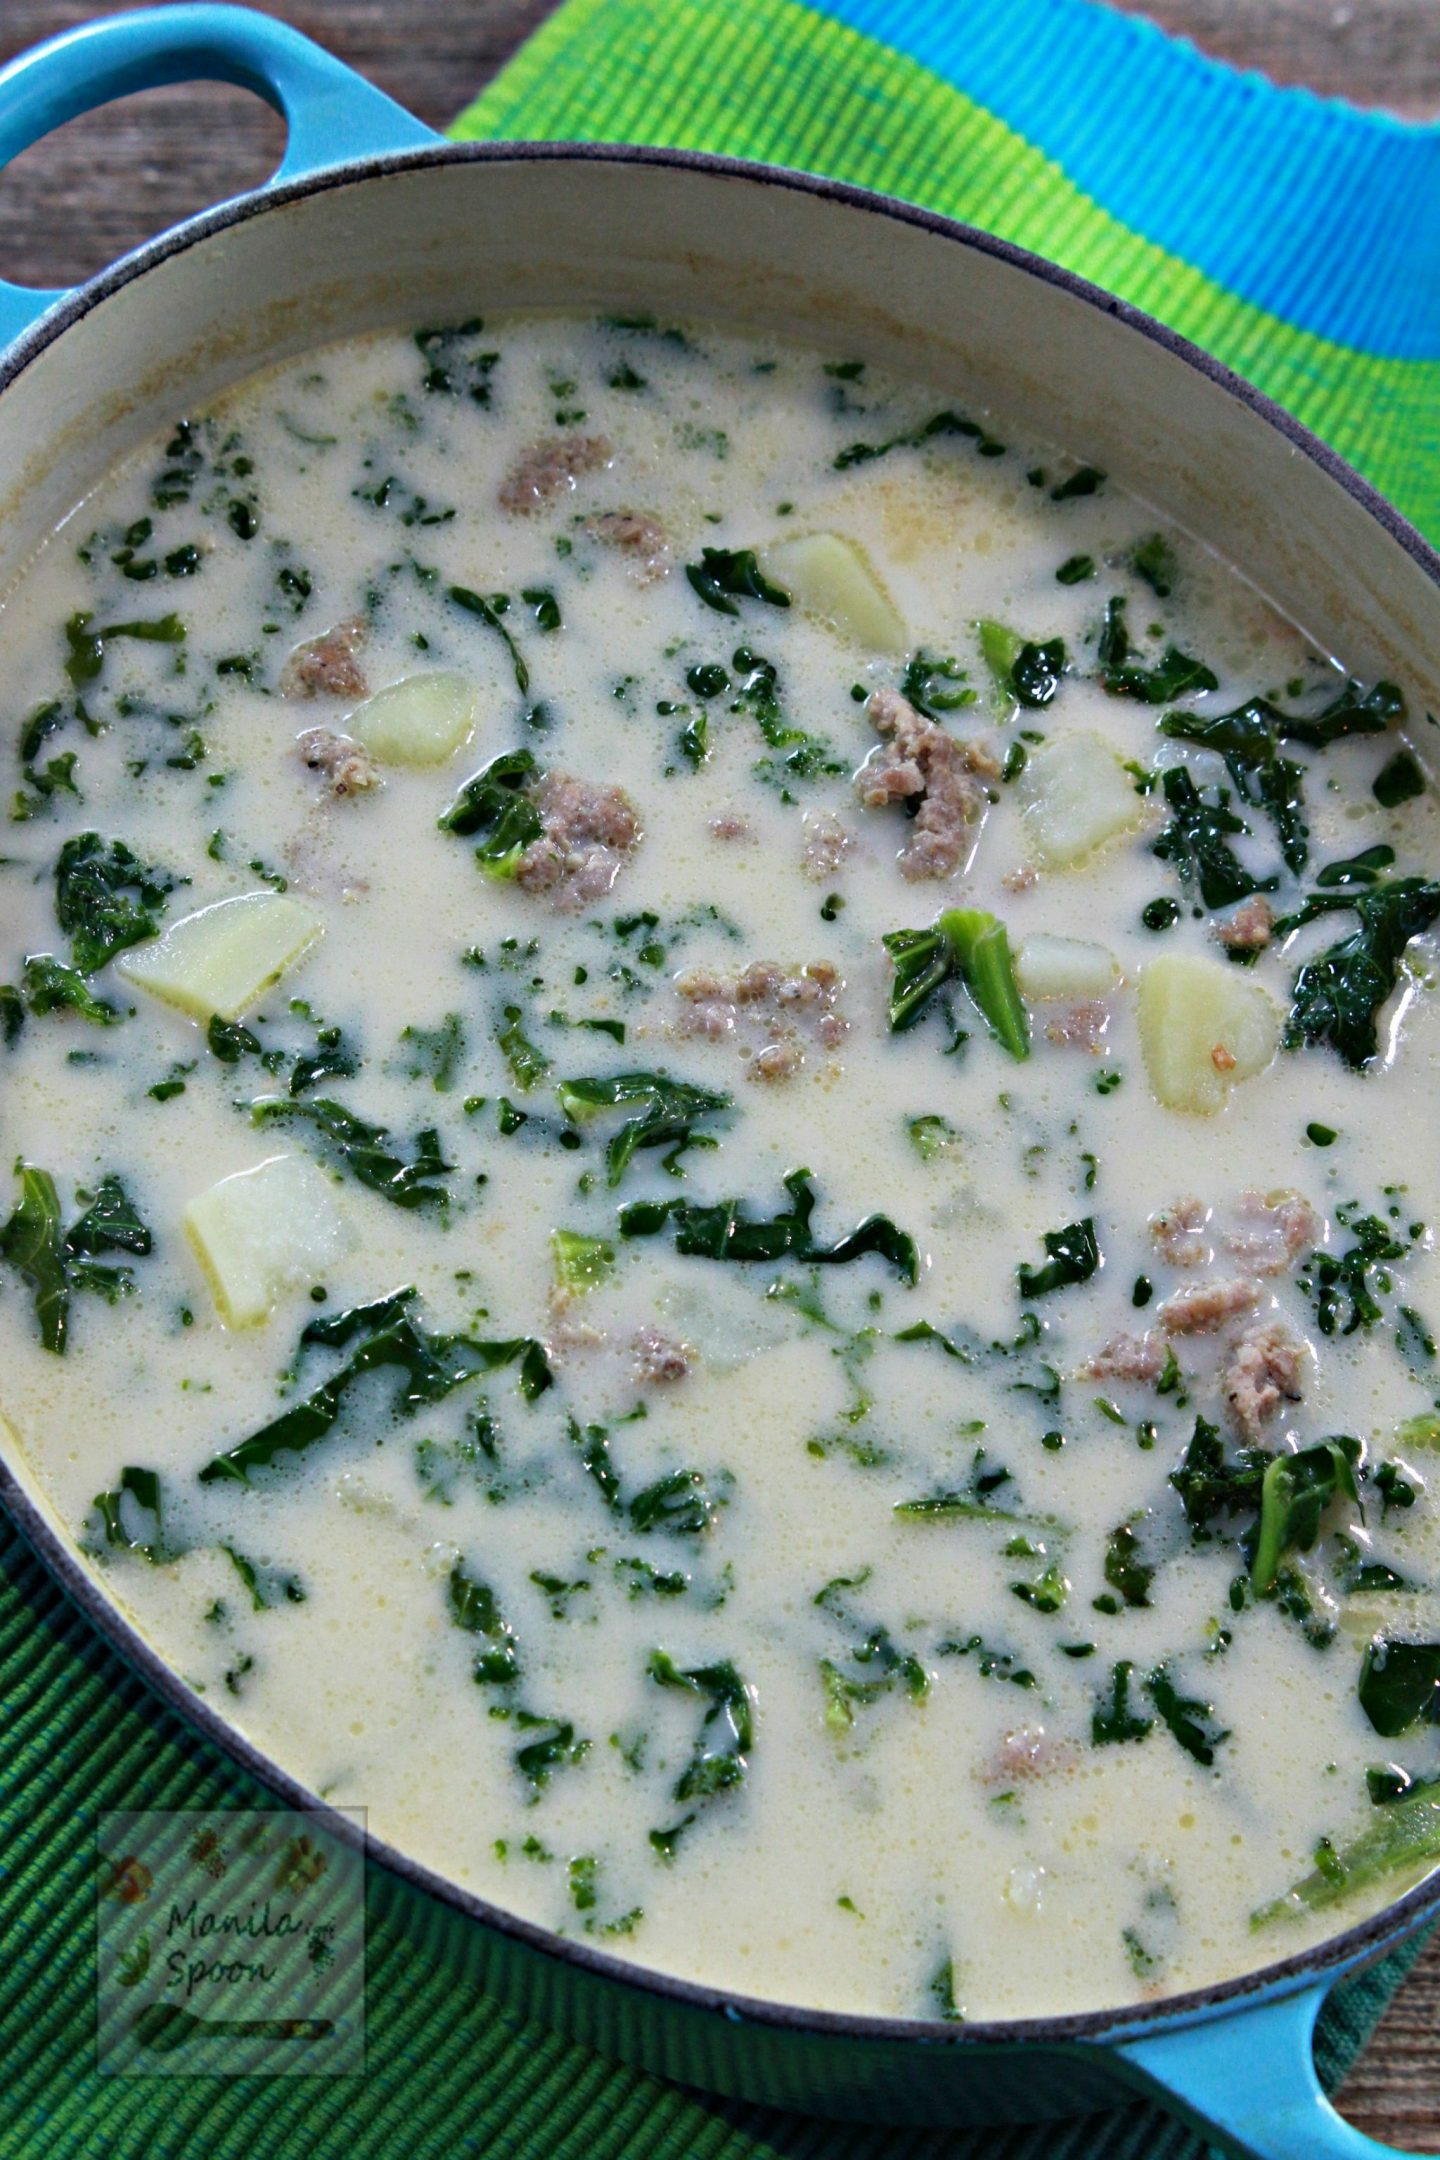 The perfect antidote for fall and winter chilly nights, a hot bowl of tasty and hearty Tuscan Sausage Potato Soup. Creamy and perfectly seasoned,  it's true comfort food in a bowl!